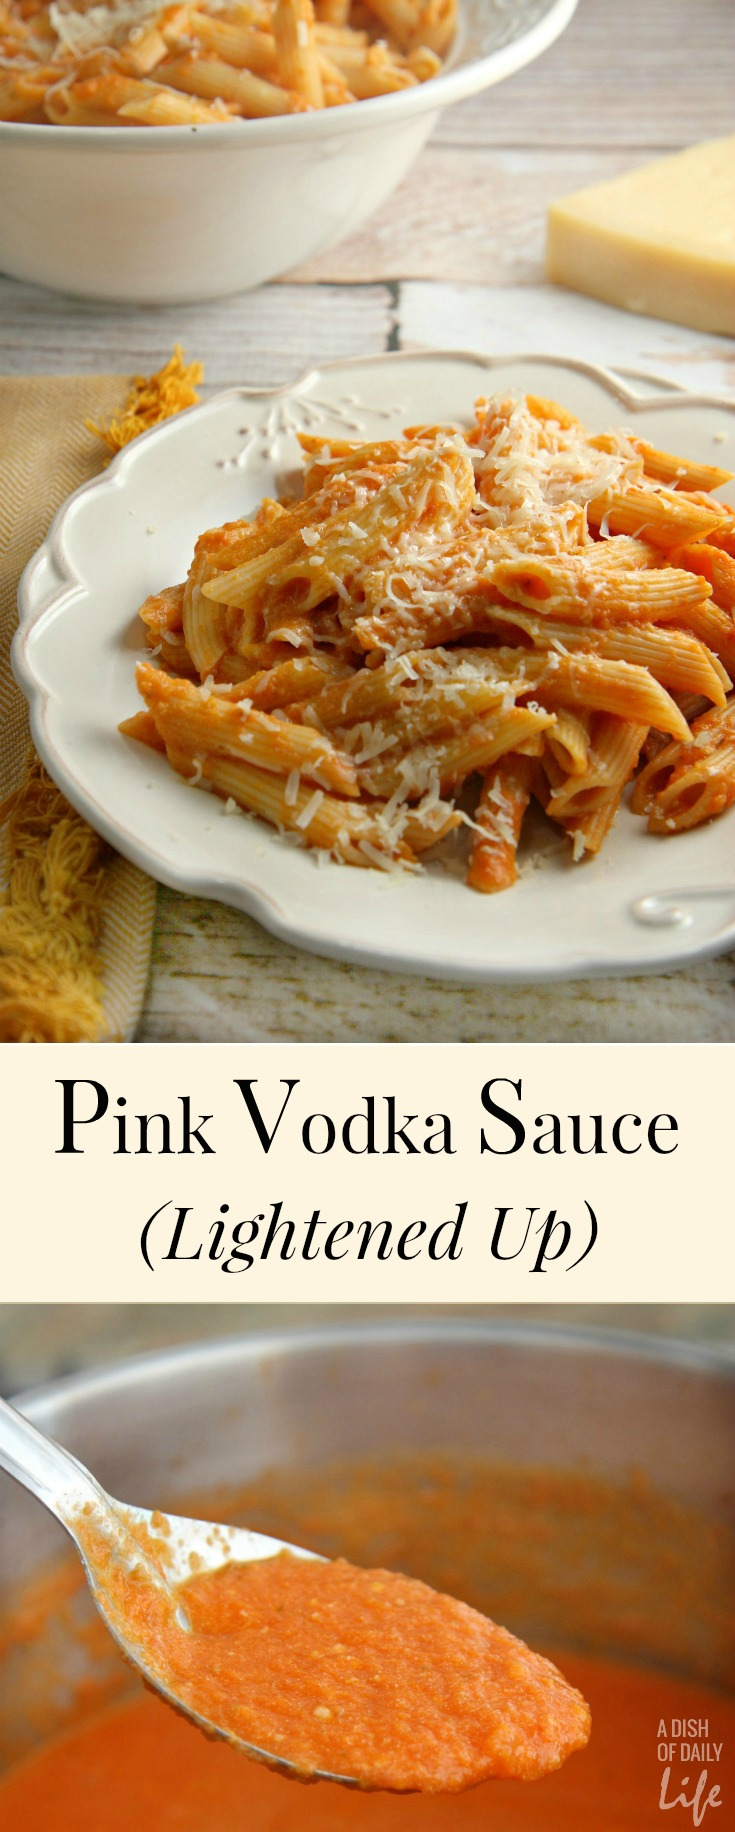 This Lightened Up Pink Vodka Sauce recipe, served over pasta, is a delicious easy meal when you need to get dinner on the table fast! It makes enough sauce for two pounds of pasta, so freeze your leftover sauce for another night. Created for Cooking for a Cure to bring awareness to Breast Cancer Awareness Month. Vegetarian.